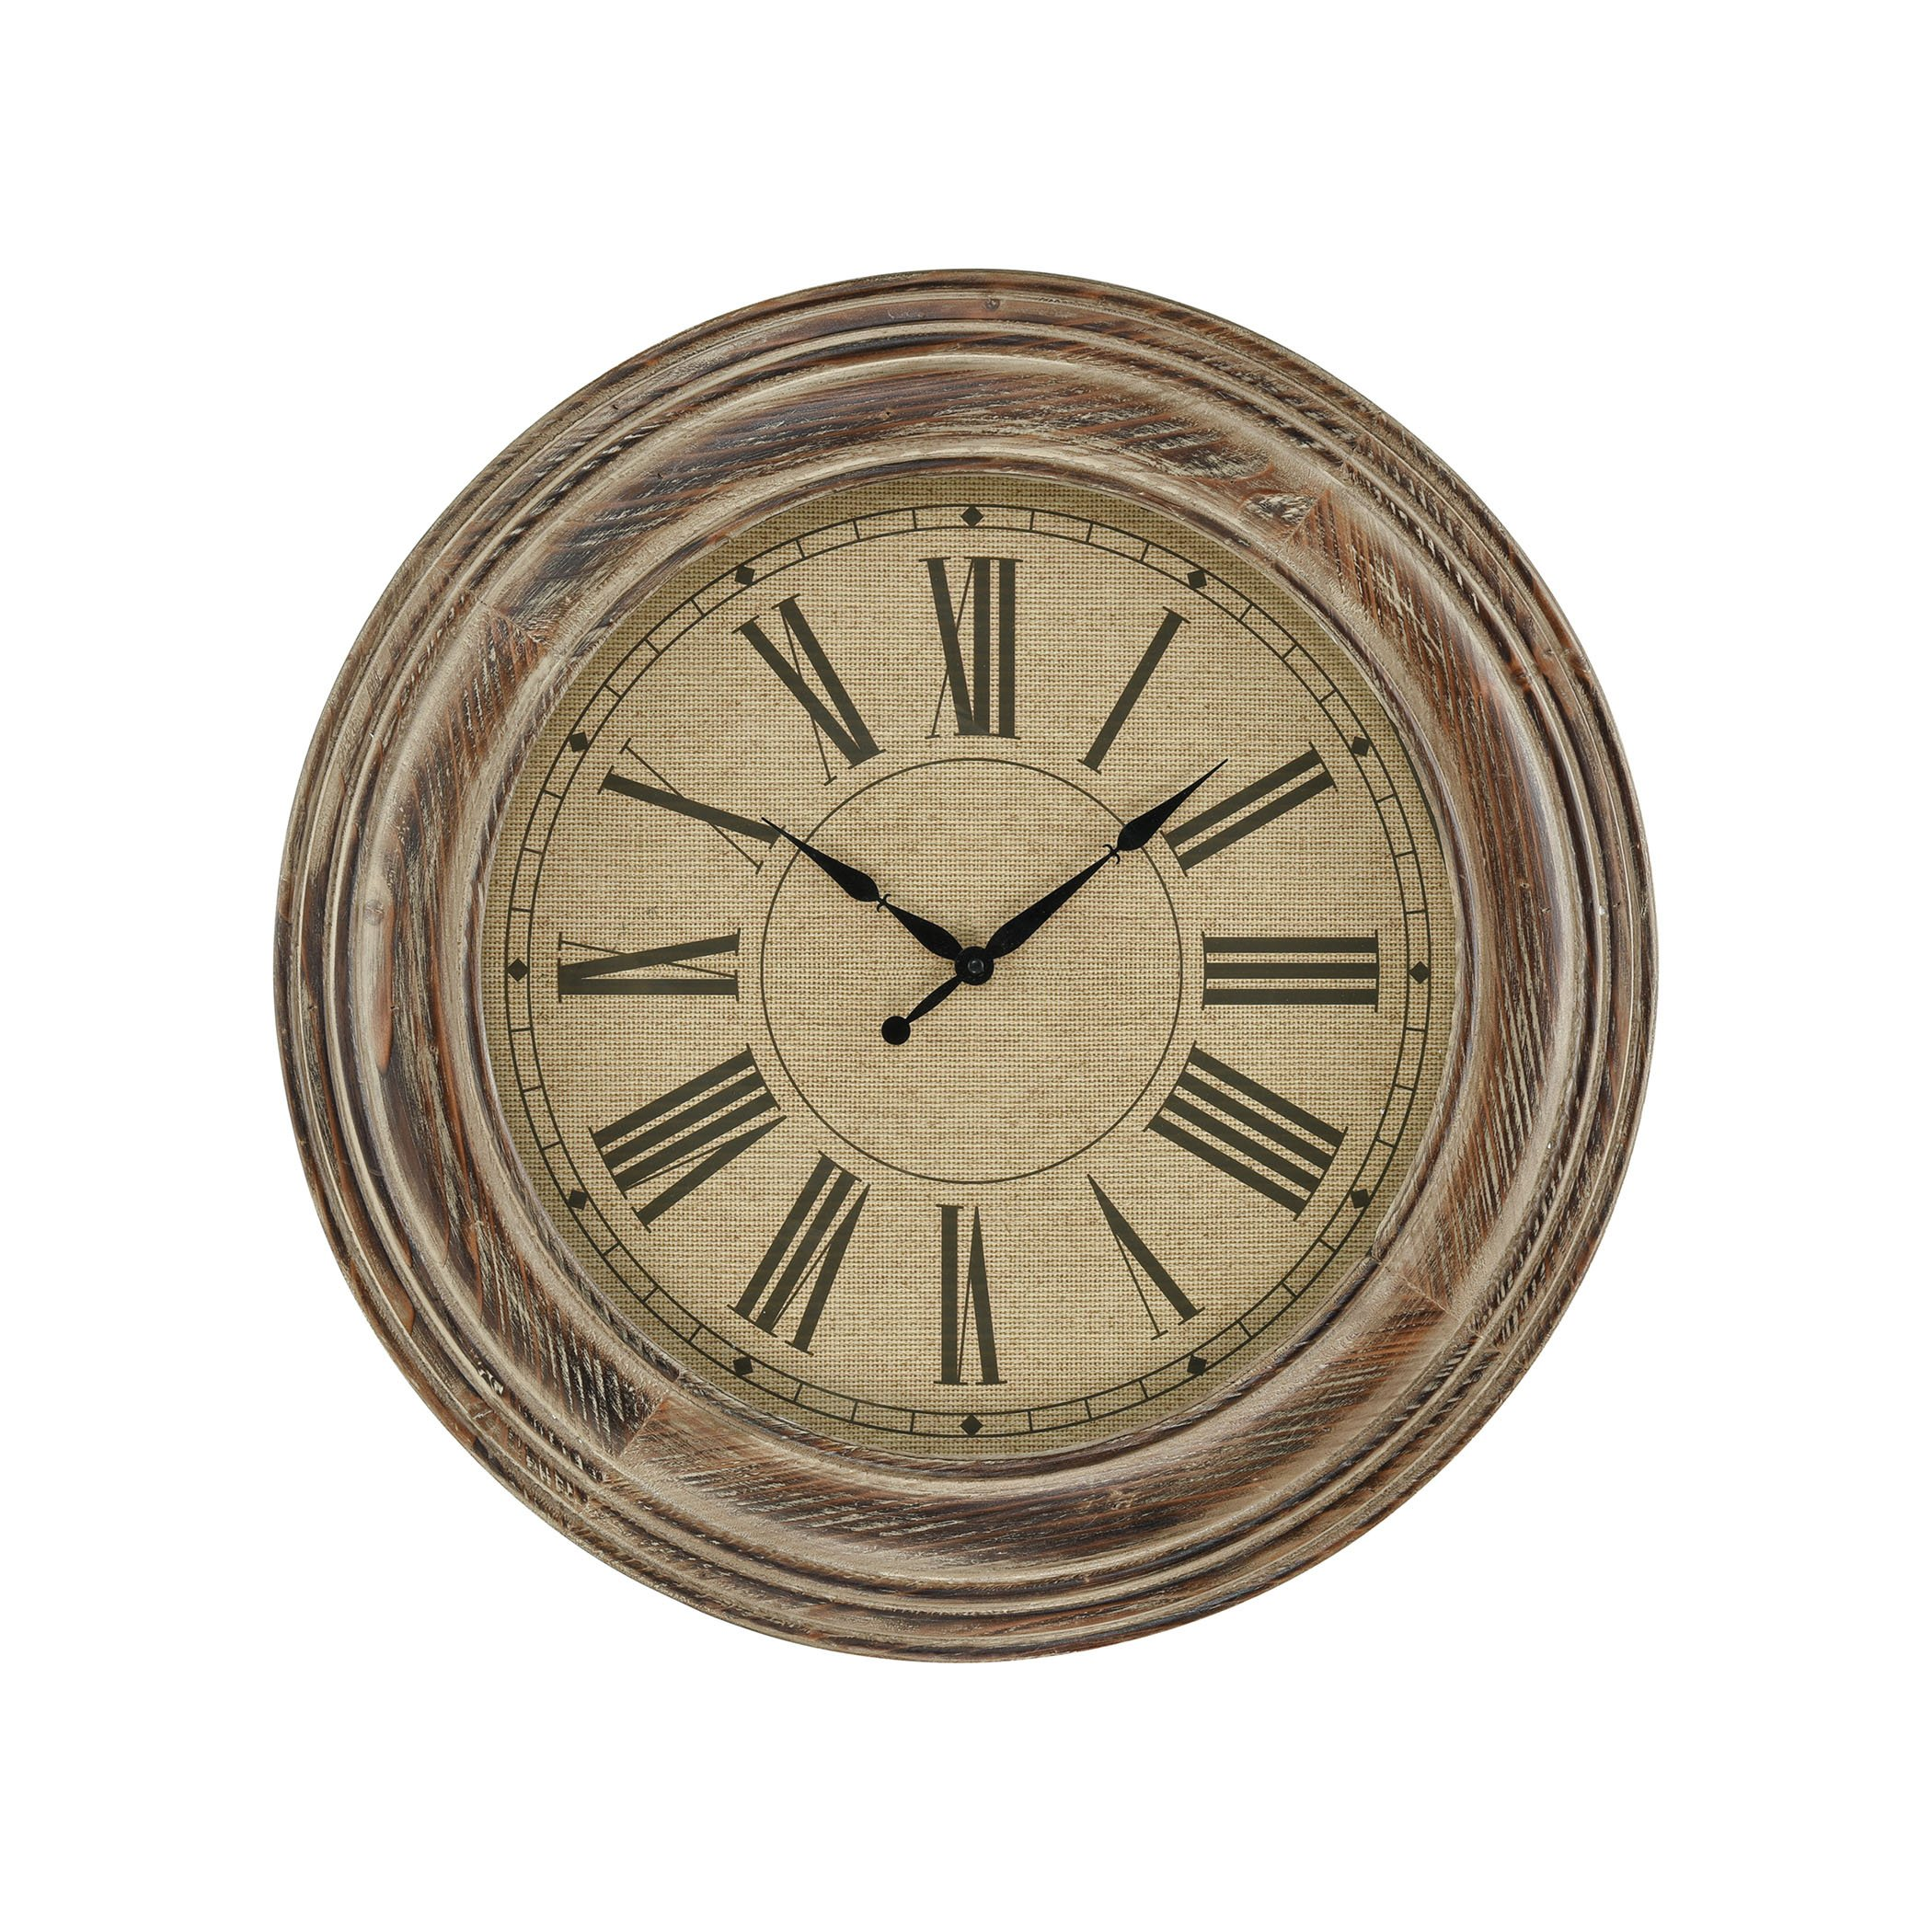 Pomeroy 916595 Pinehurst Wall Clock by Pomeroy